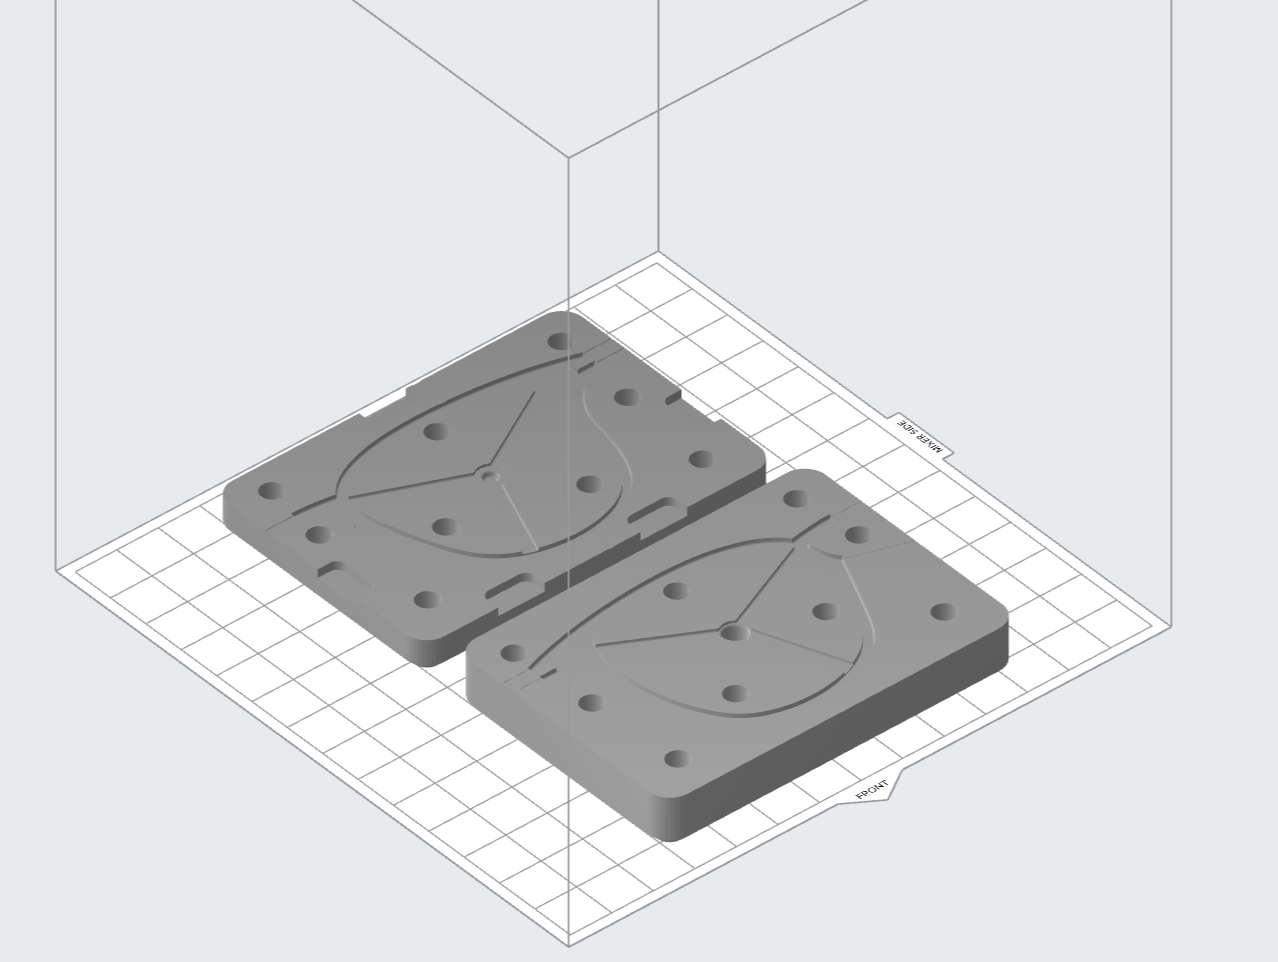 Various injection mold designs in Formlabs' PreForm print preparation software.